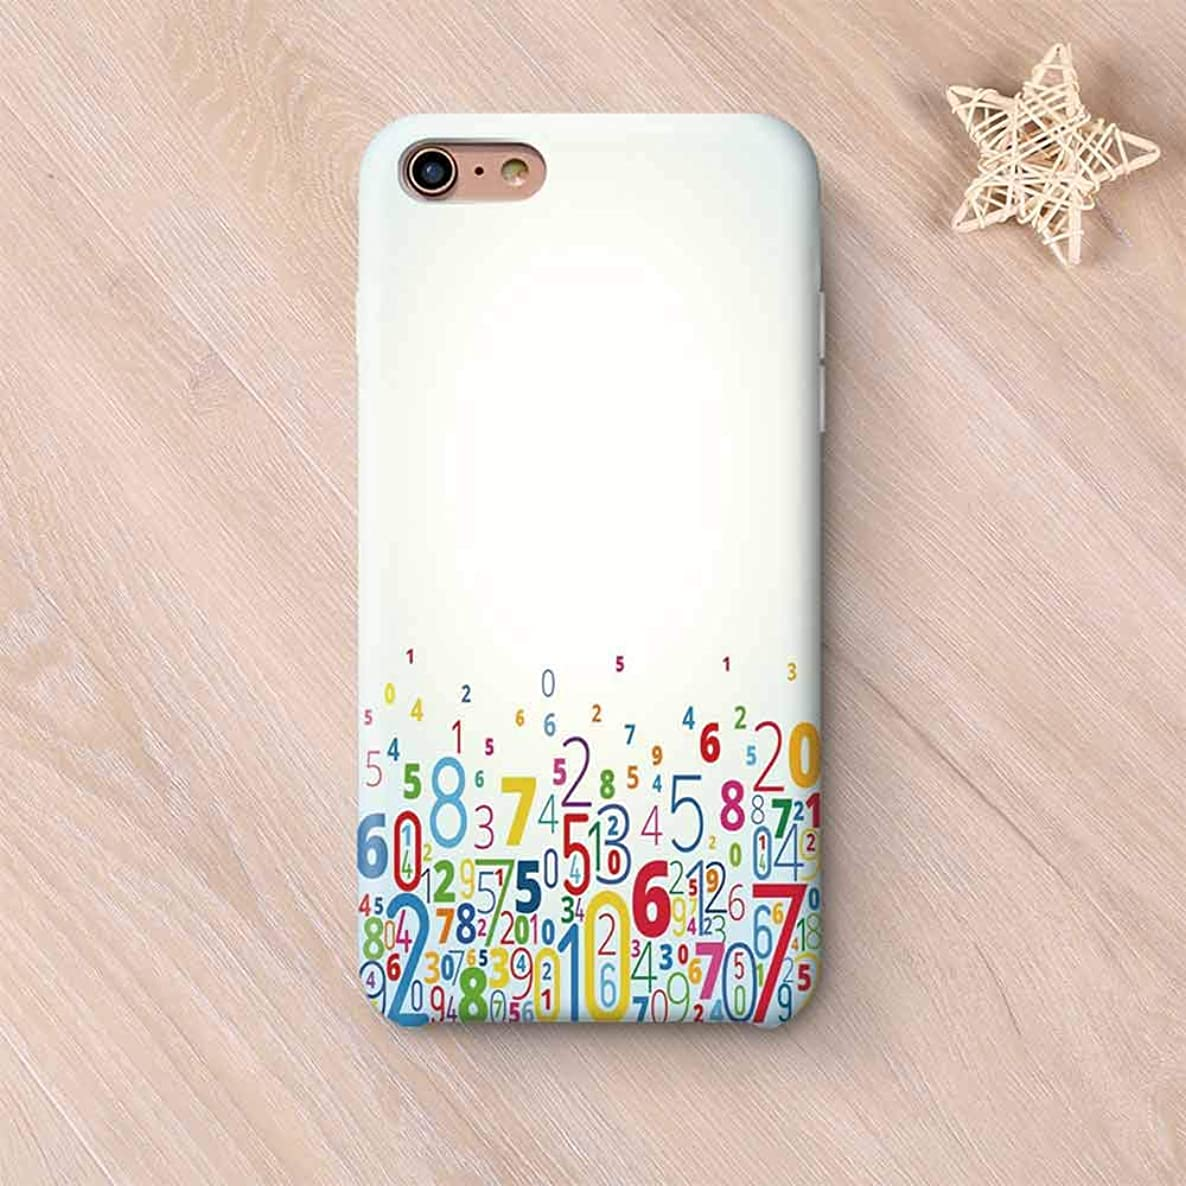 Mathematics Classroom Decor Wear Resisting Compatible with iPhone Case,Rainbow Colored Digits Algebra Math Figures Learning Counting Decorative Compatible with iPhone 7/8,iPhone 6 Plus / 6s Plus